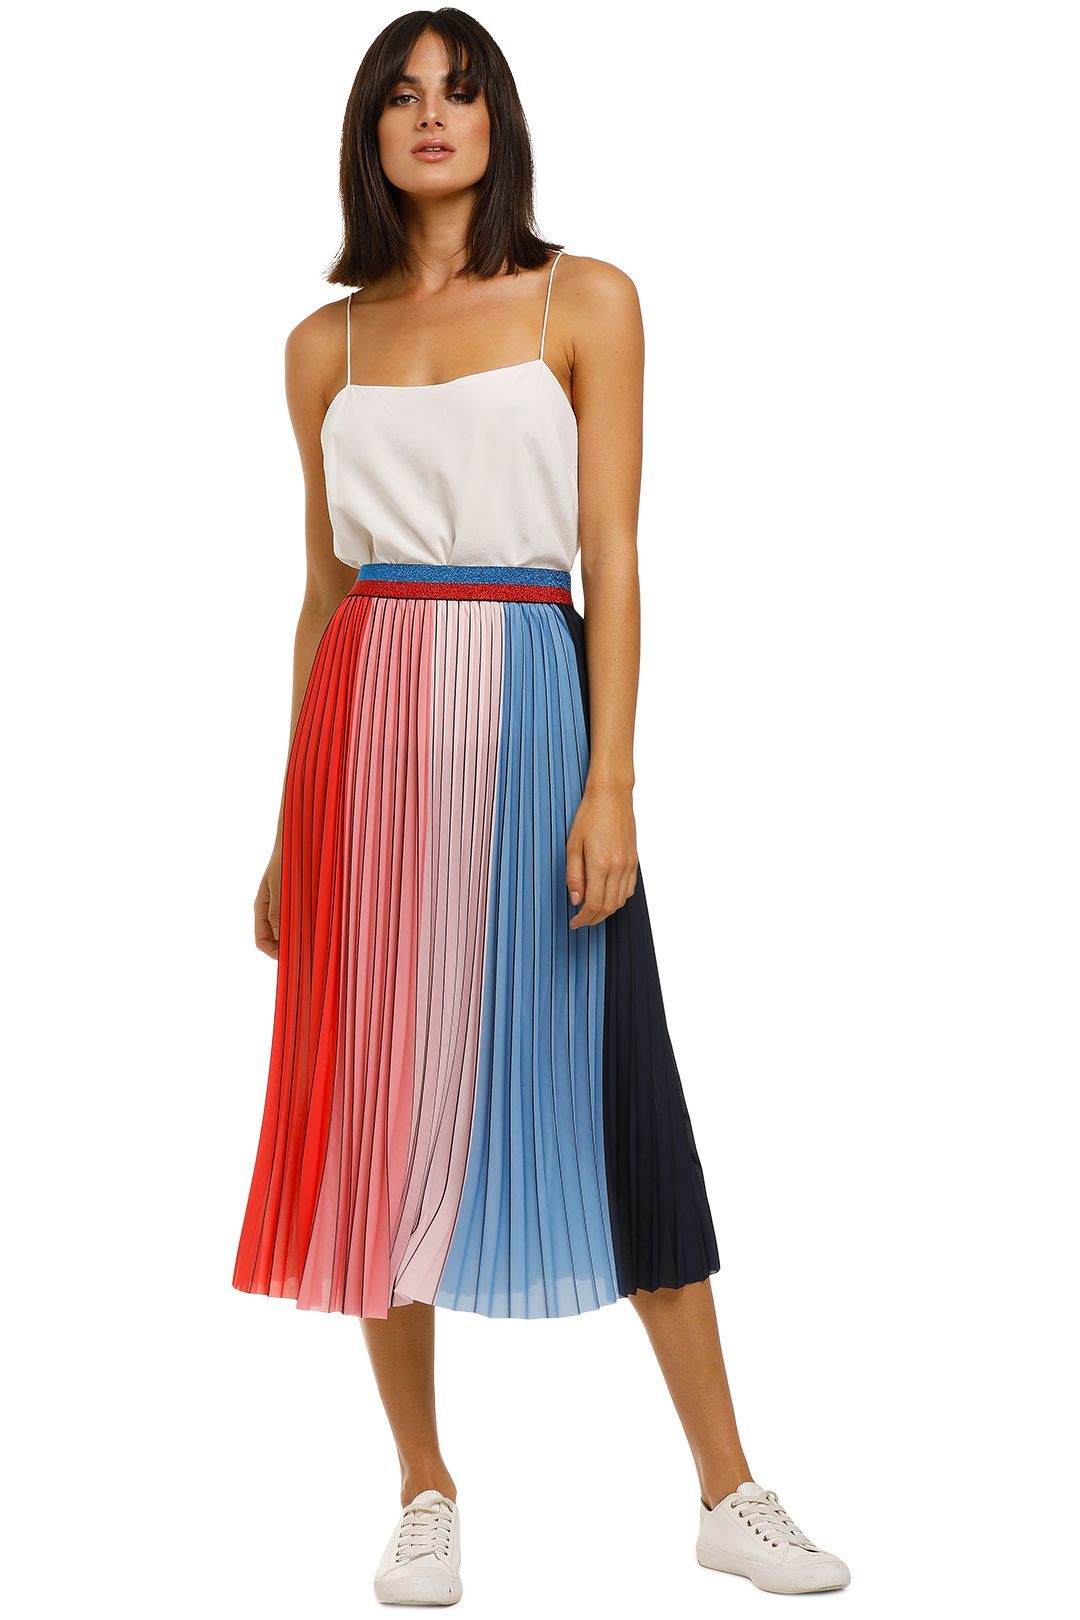 Coop-by-Trelise-Cooper-Let-Them-Pleat-Cake-Skirt-Sherbet-Front